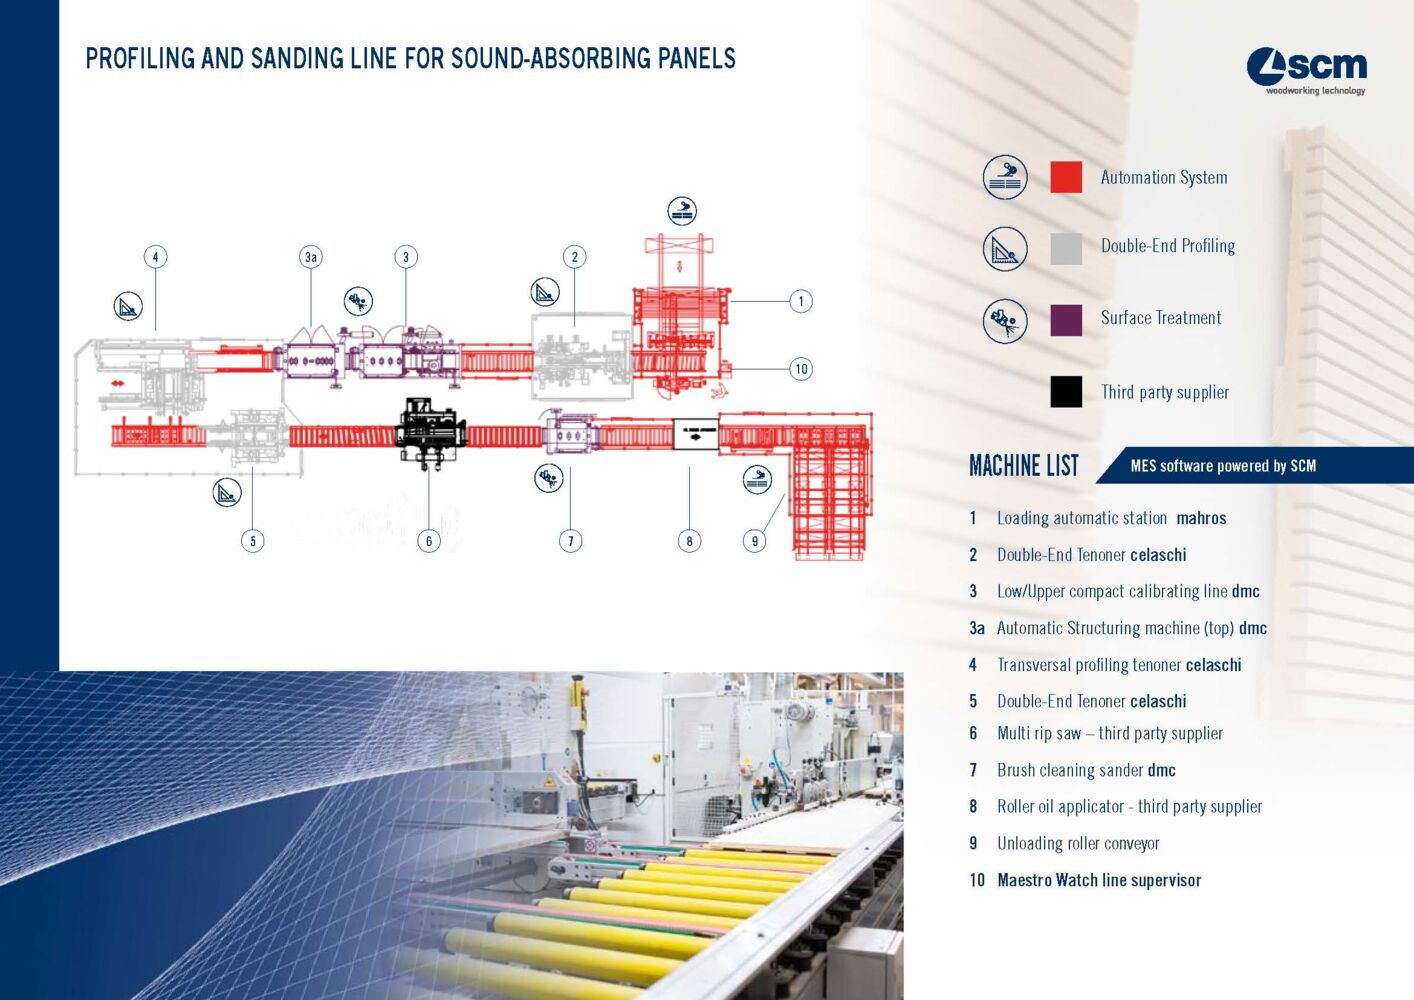 Profiling and sanding line for sound-absorbing panels